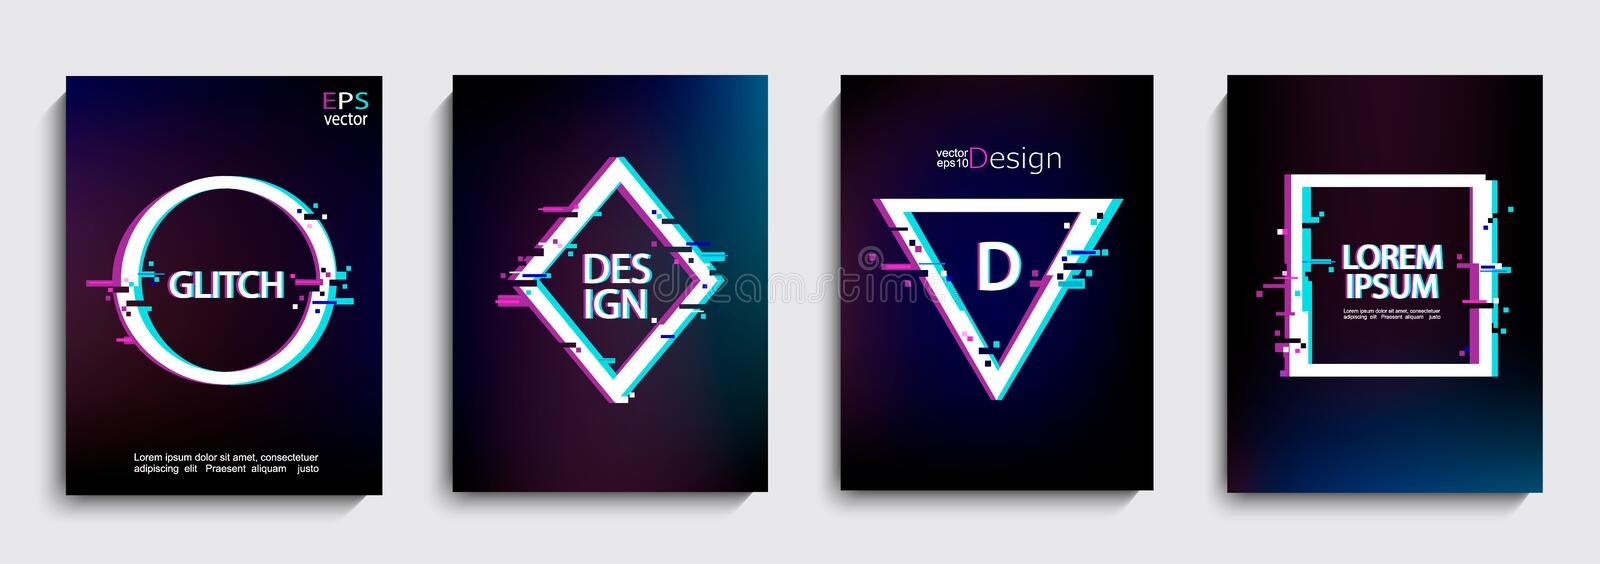 Set of geometric shapes, frames with glitch style. Set of geometric shapes, frames with glitch style on dark background. Vector illustration with geometric stock illustration